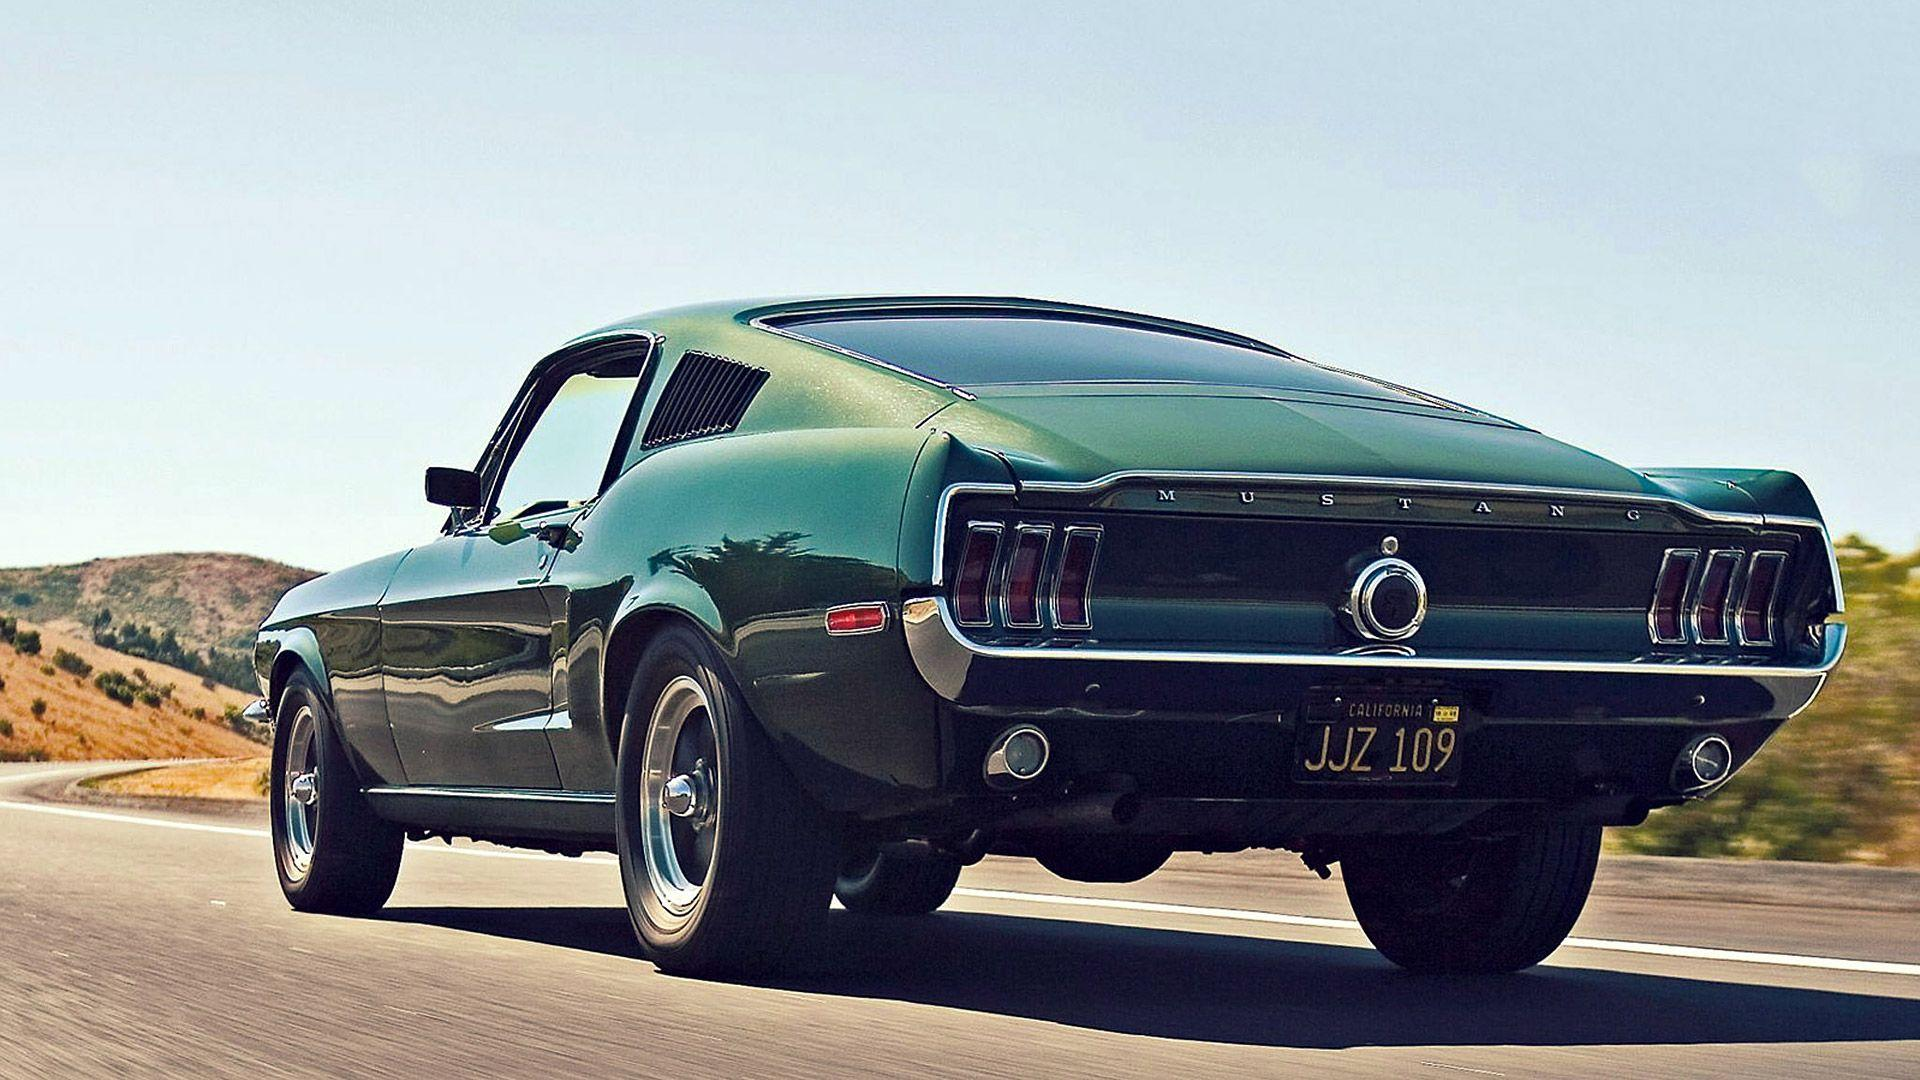 1968 Mustang Wallpapers Wallpaper Cave